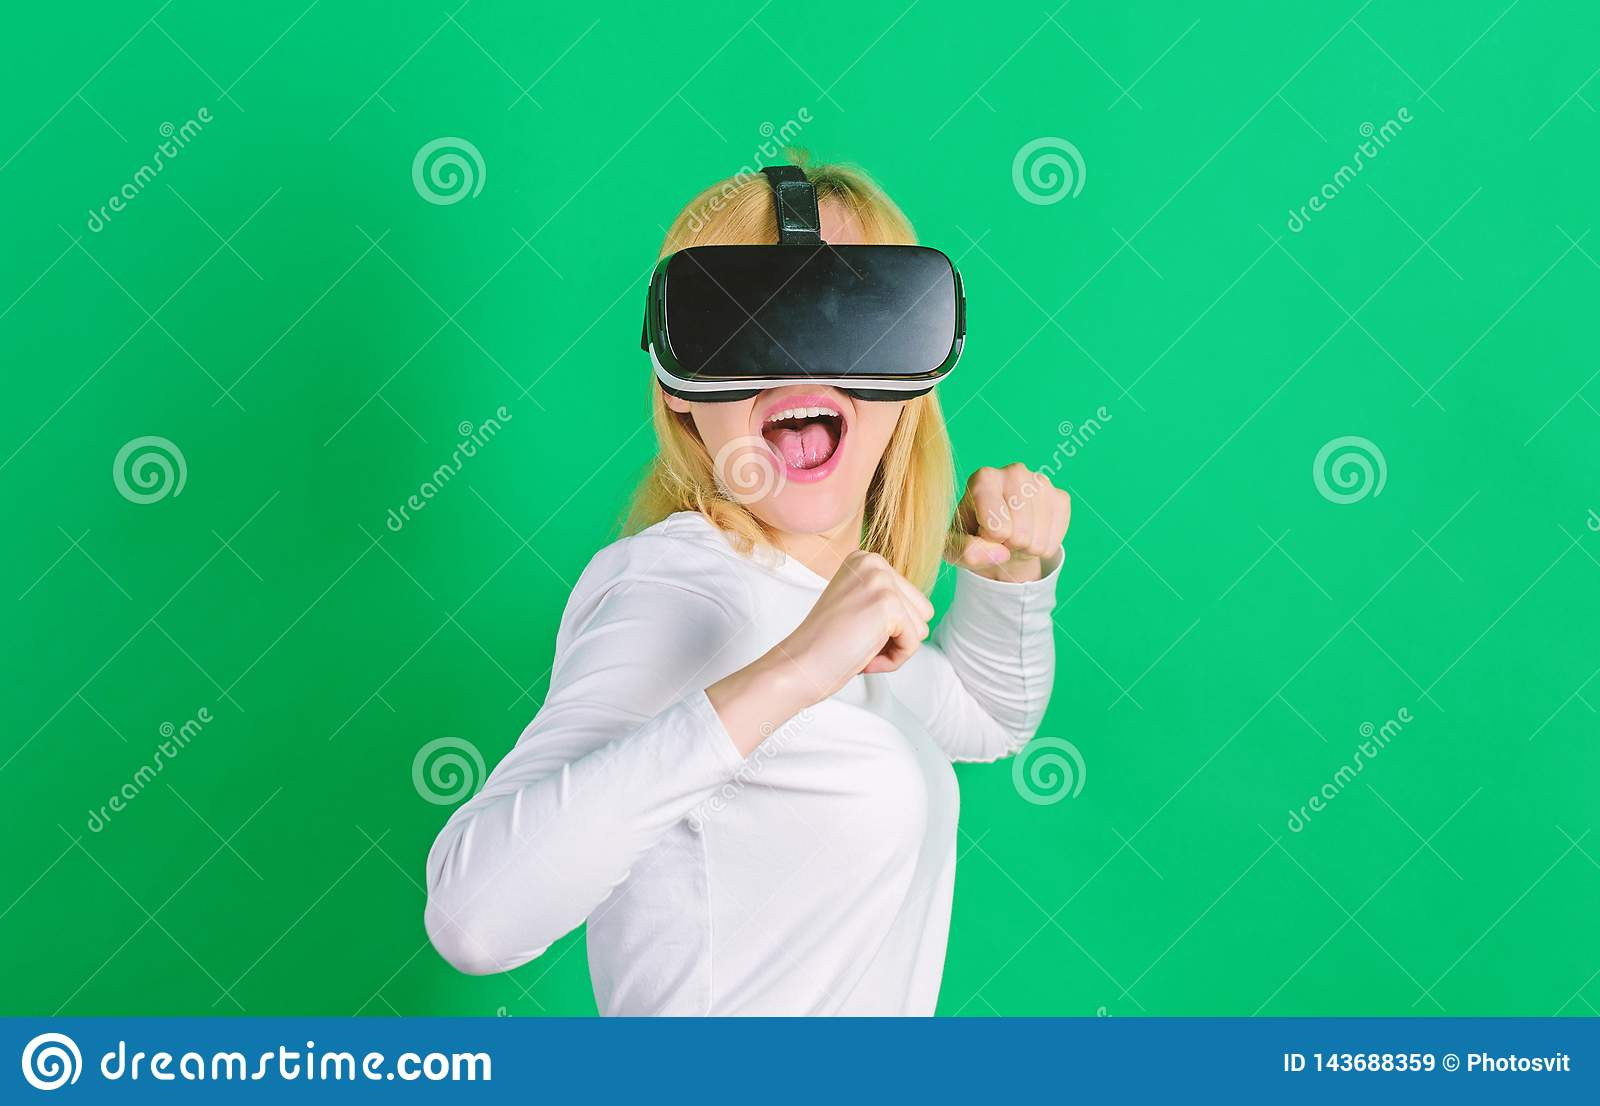 Person with virtual reality helmet isolated on green background. Woman with VR. Virtual reality experience.